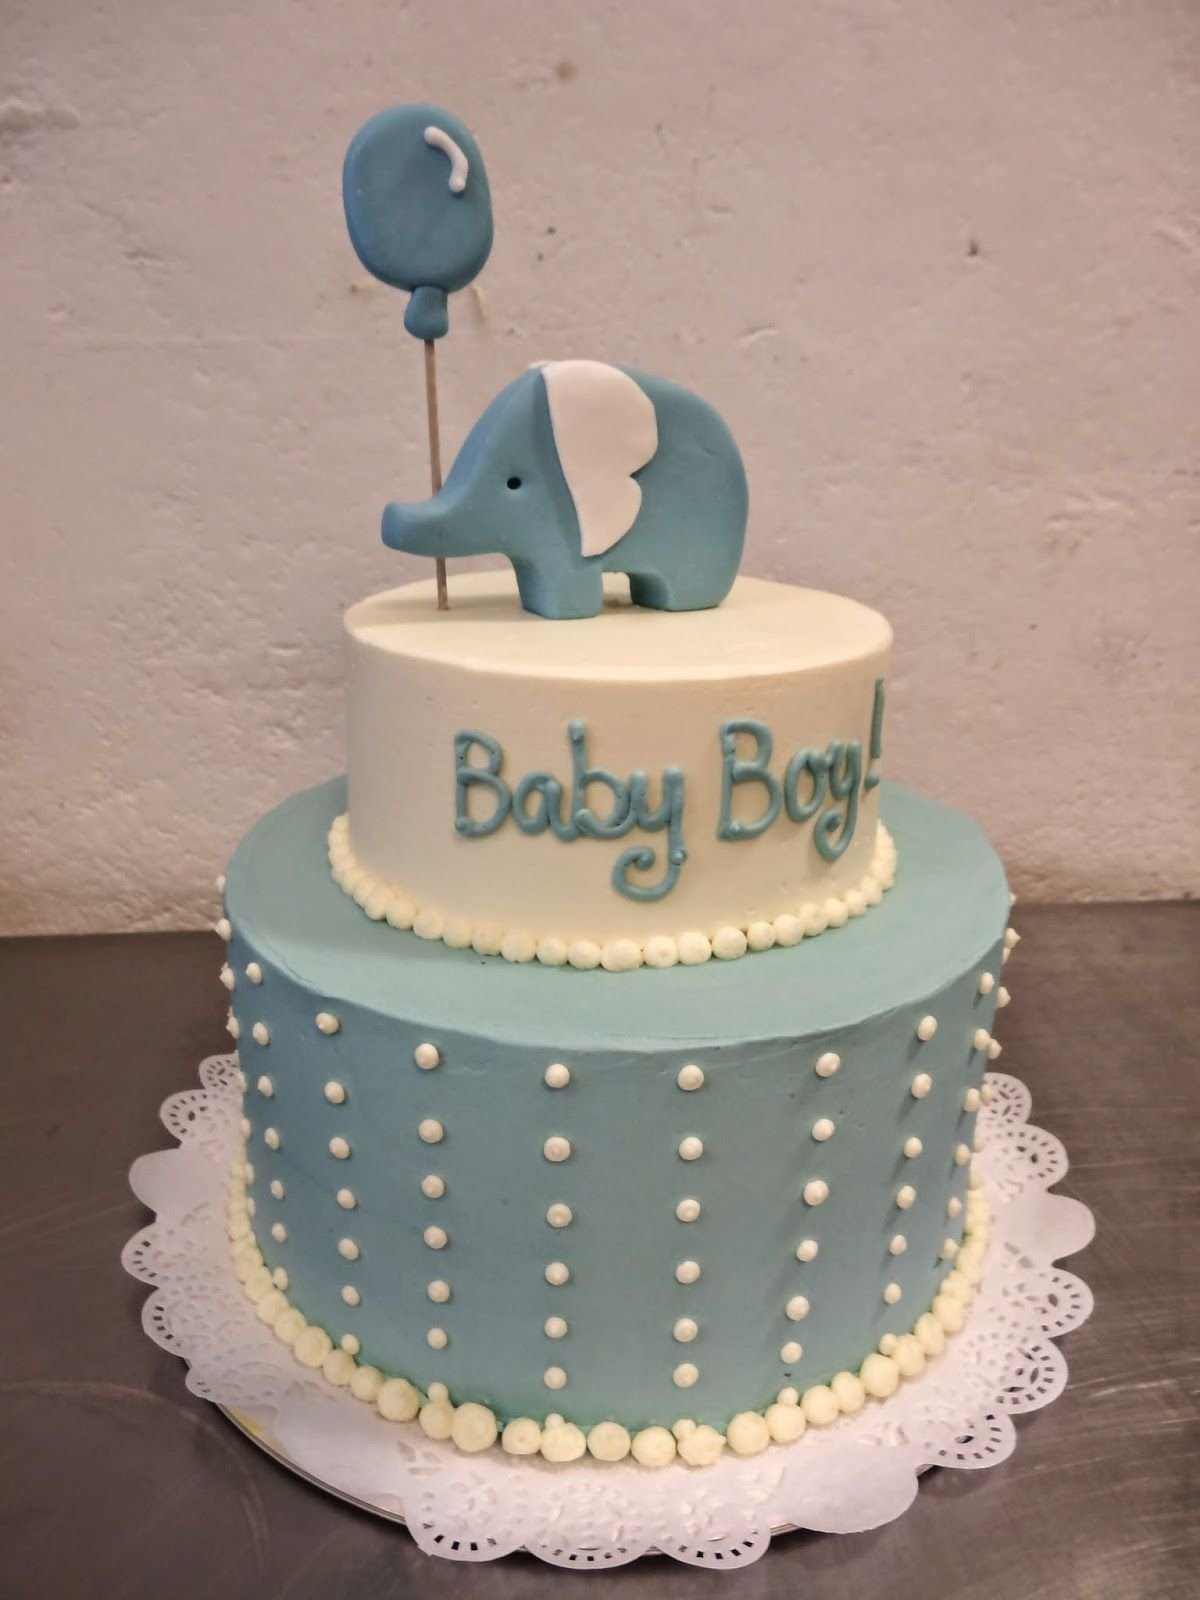 CAKE Amsterdam Boy Baby Shower Cake baby shower Pinterest Boy